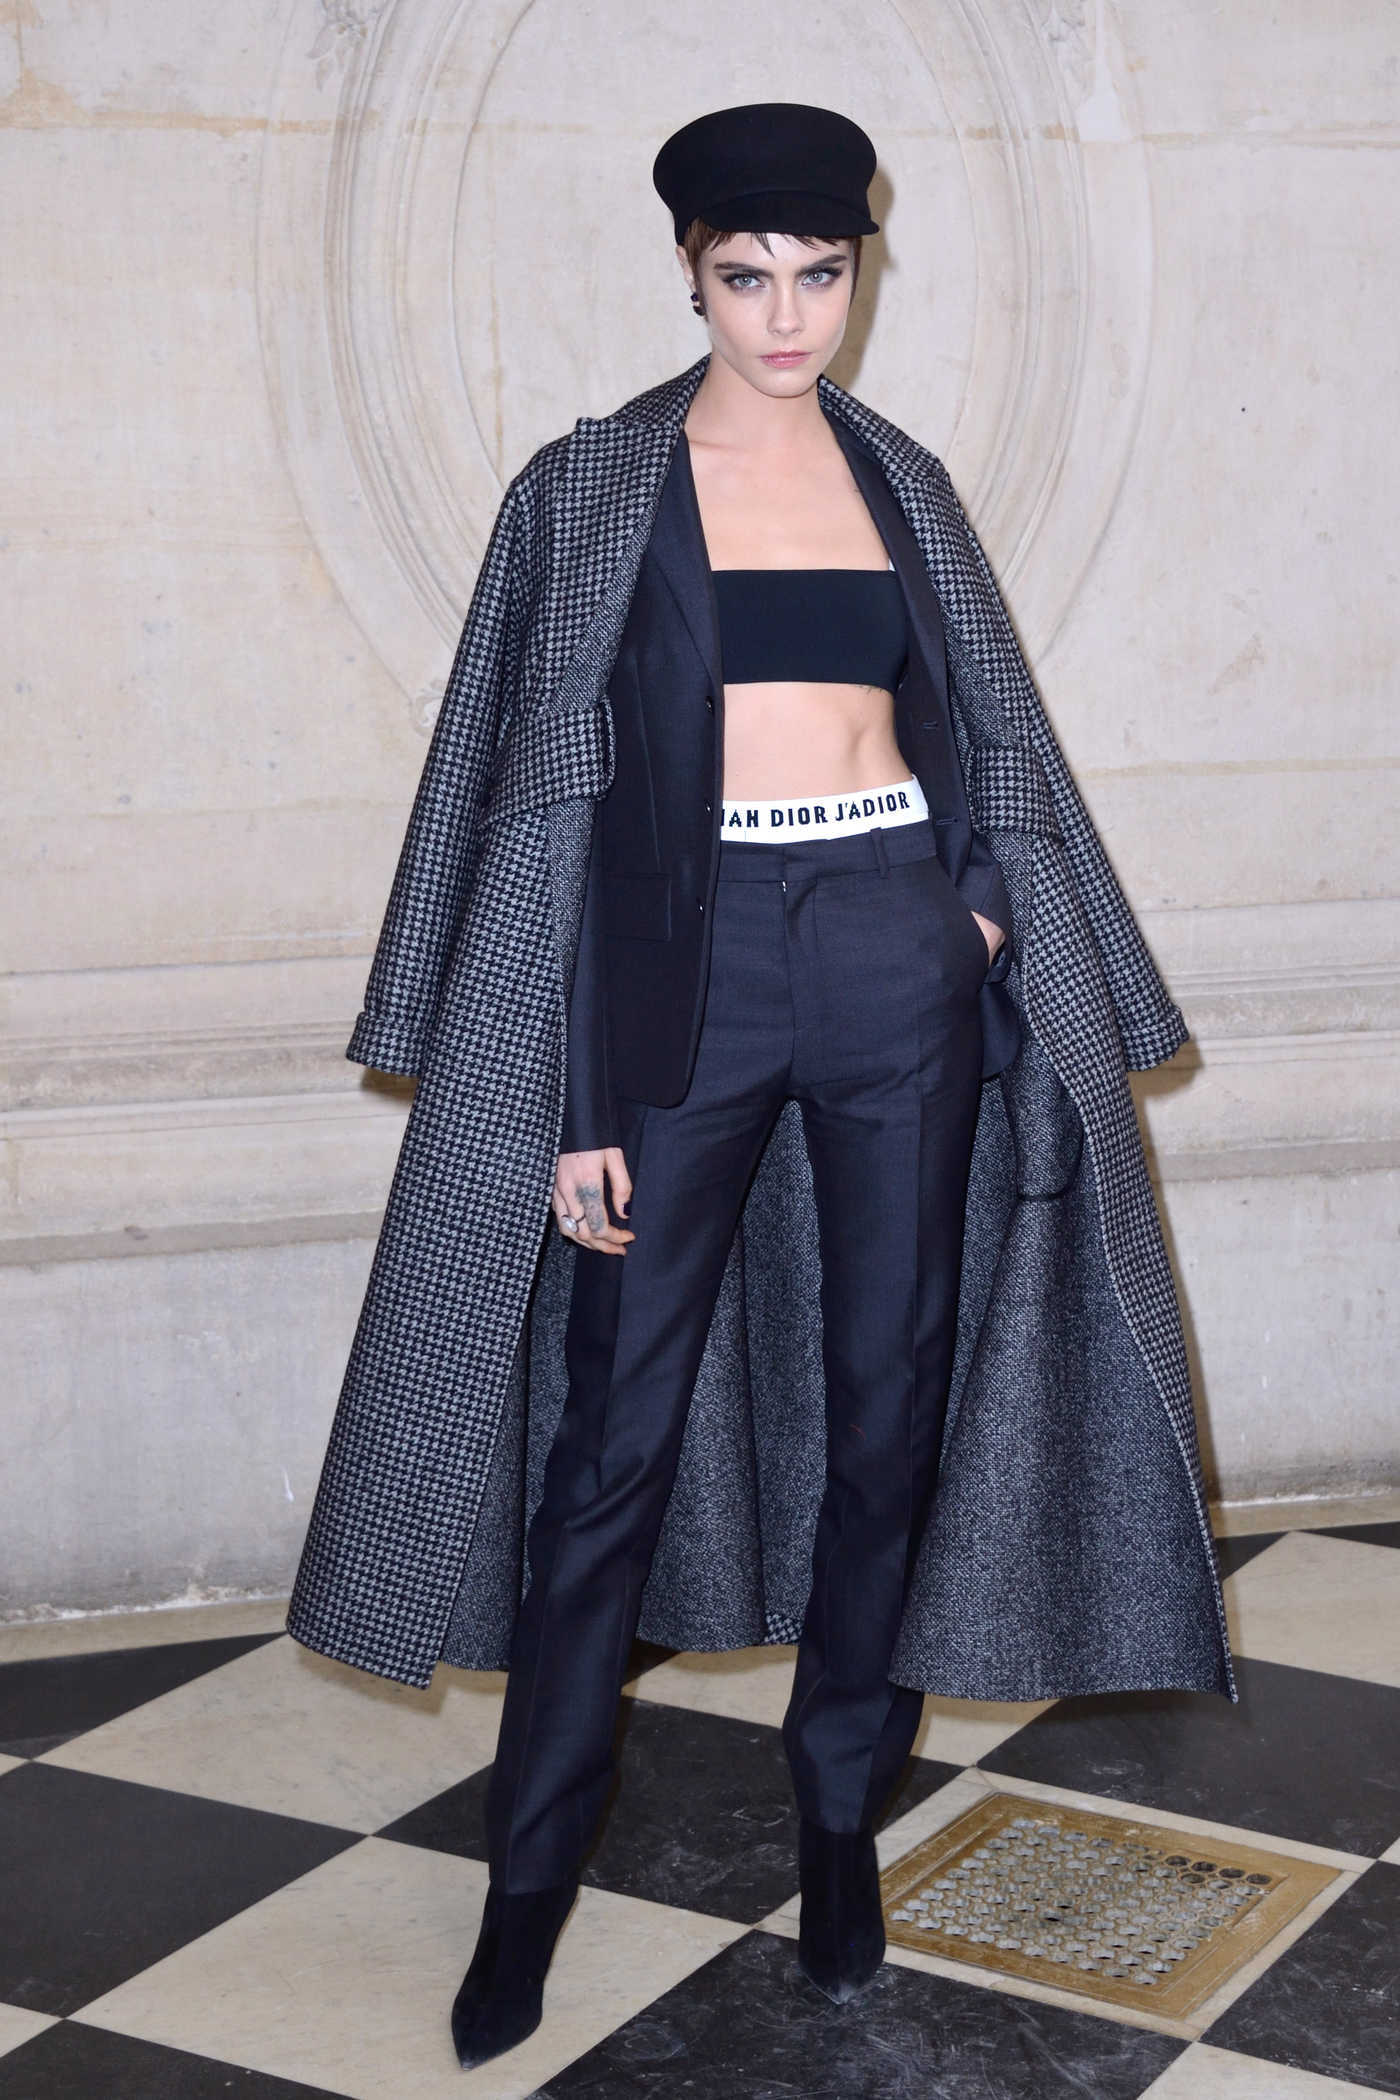 Cara Delevingne Attends the Christian Dior Show During Paris Fashion Week in Paris 02/27/2018